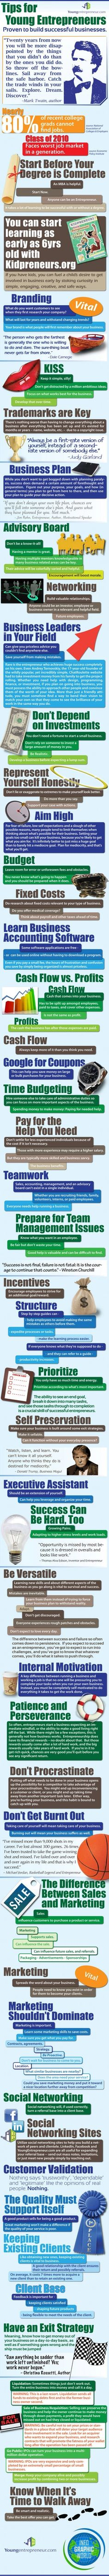 Business Ideas For Young Entrepreneurs | Business